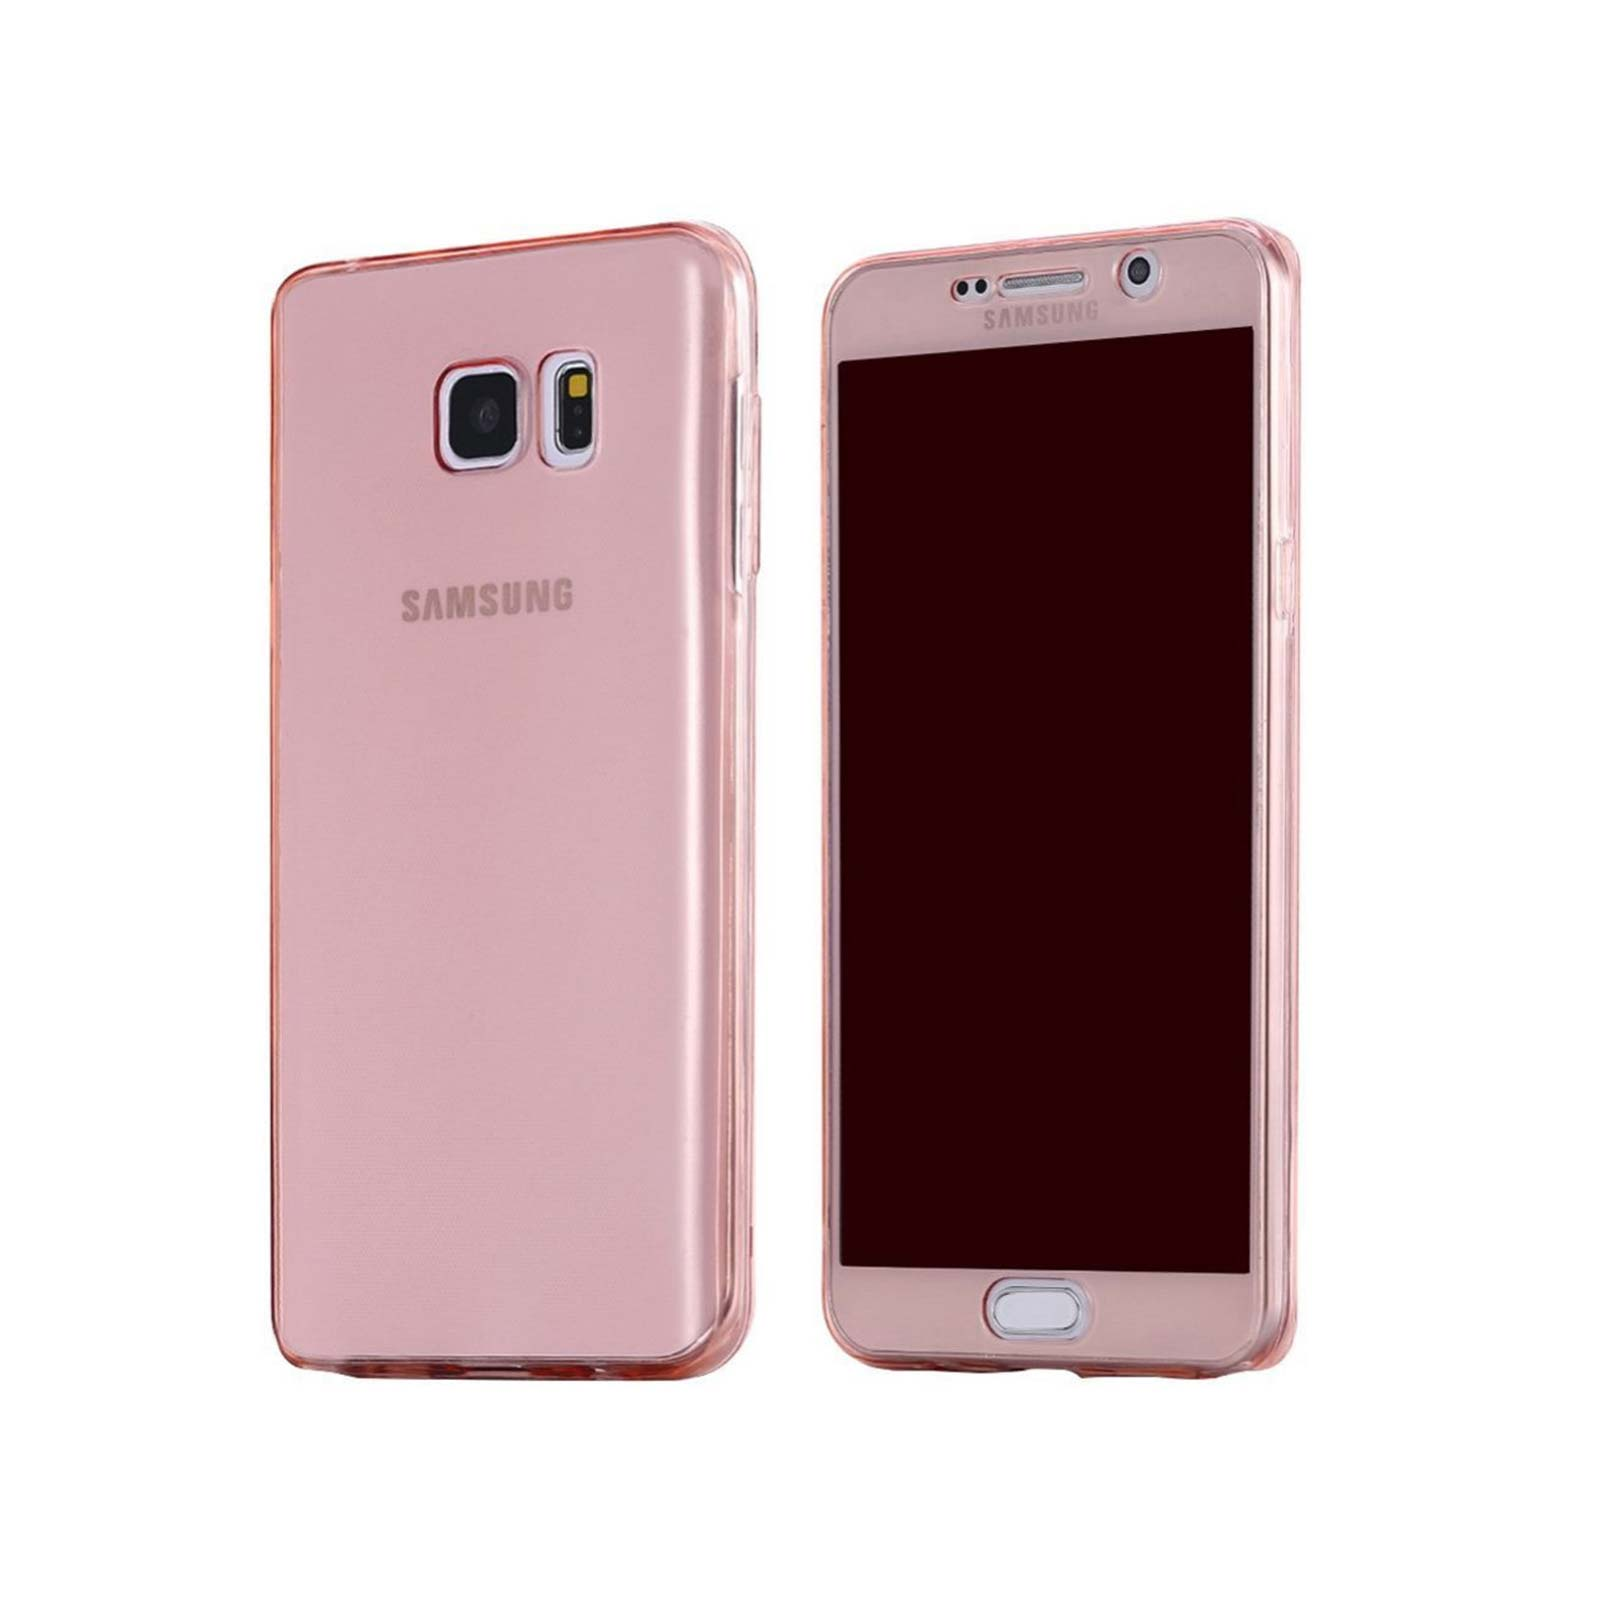 lincivius coque etui housse gel tpu silicone integral samsung galaxy s8 ebay. Black Bedroom Furniture Sets. Home Design Ideas